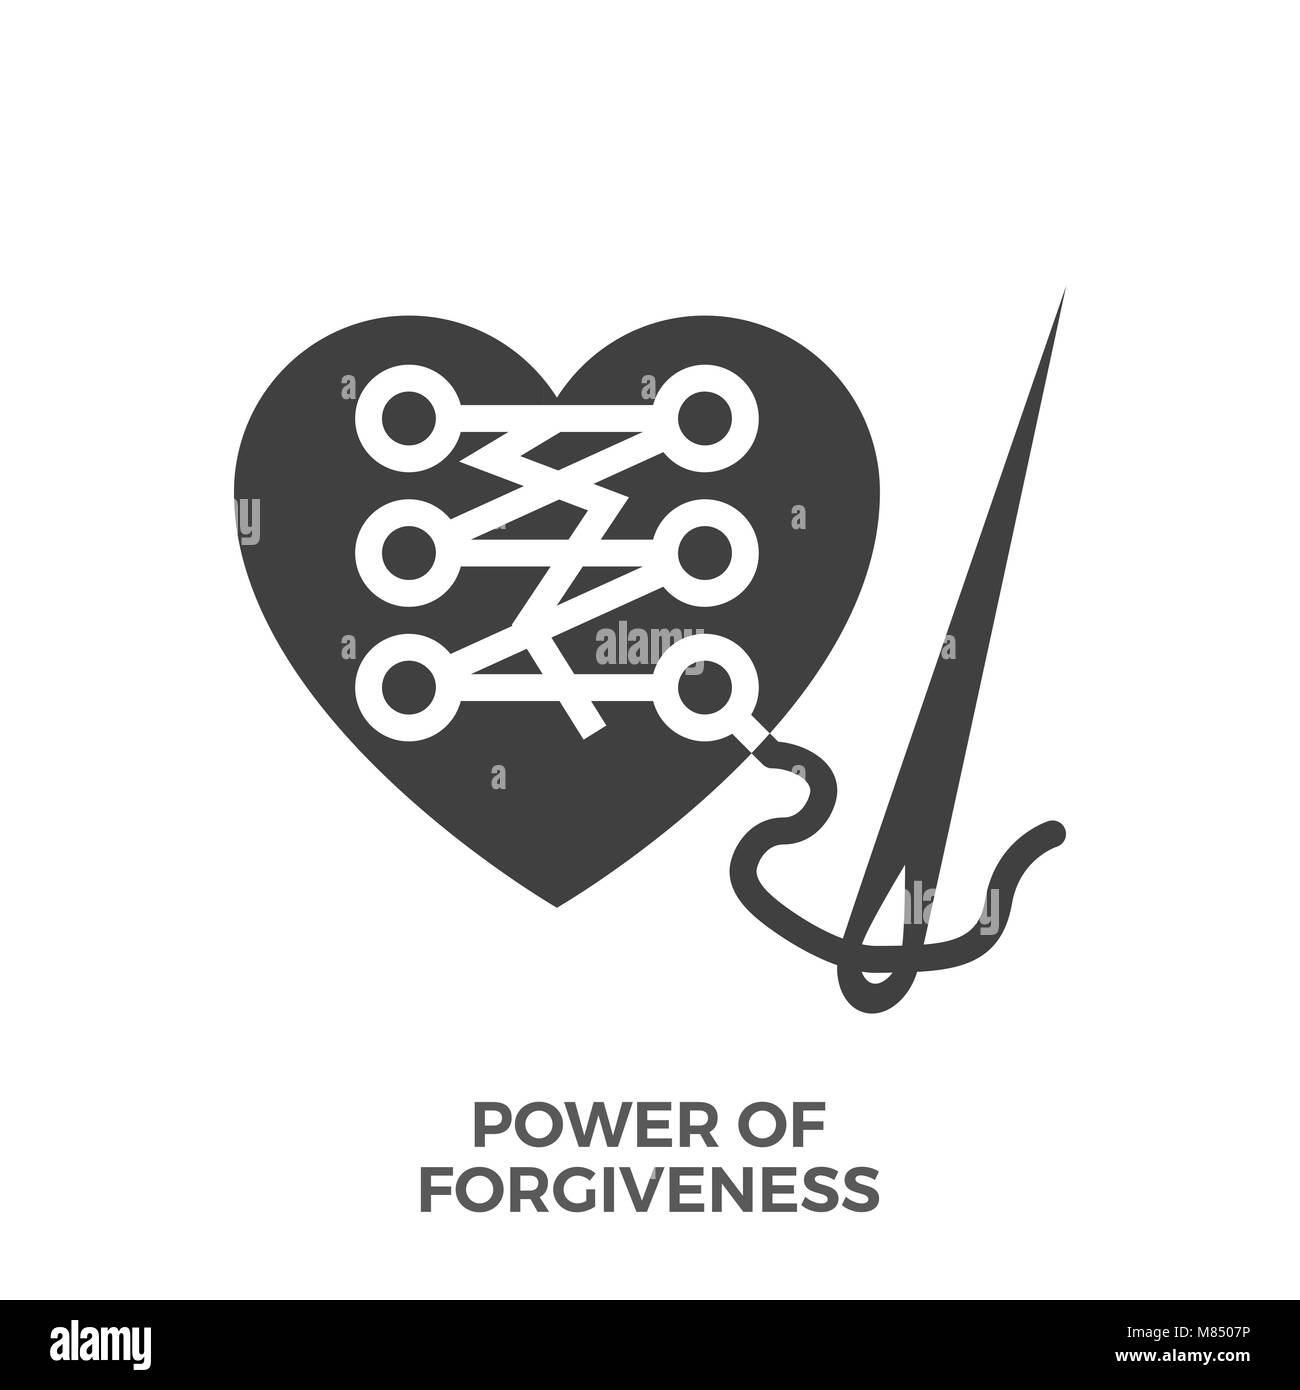 Power of Forgiveness Glyph Vector Icon Isolated on the White Background. - Stock Vector